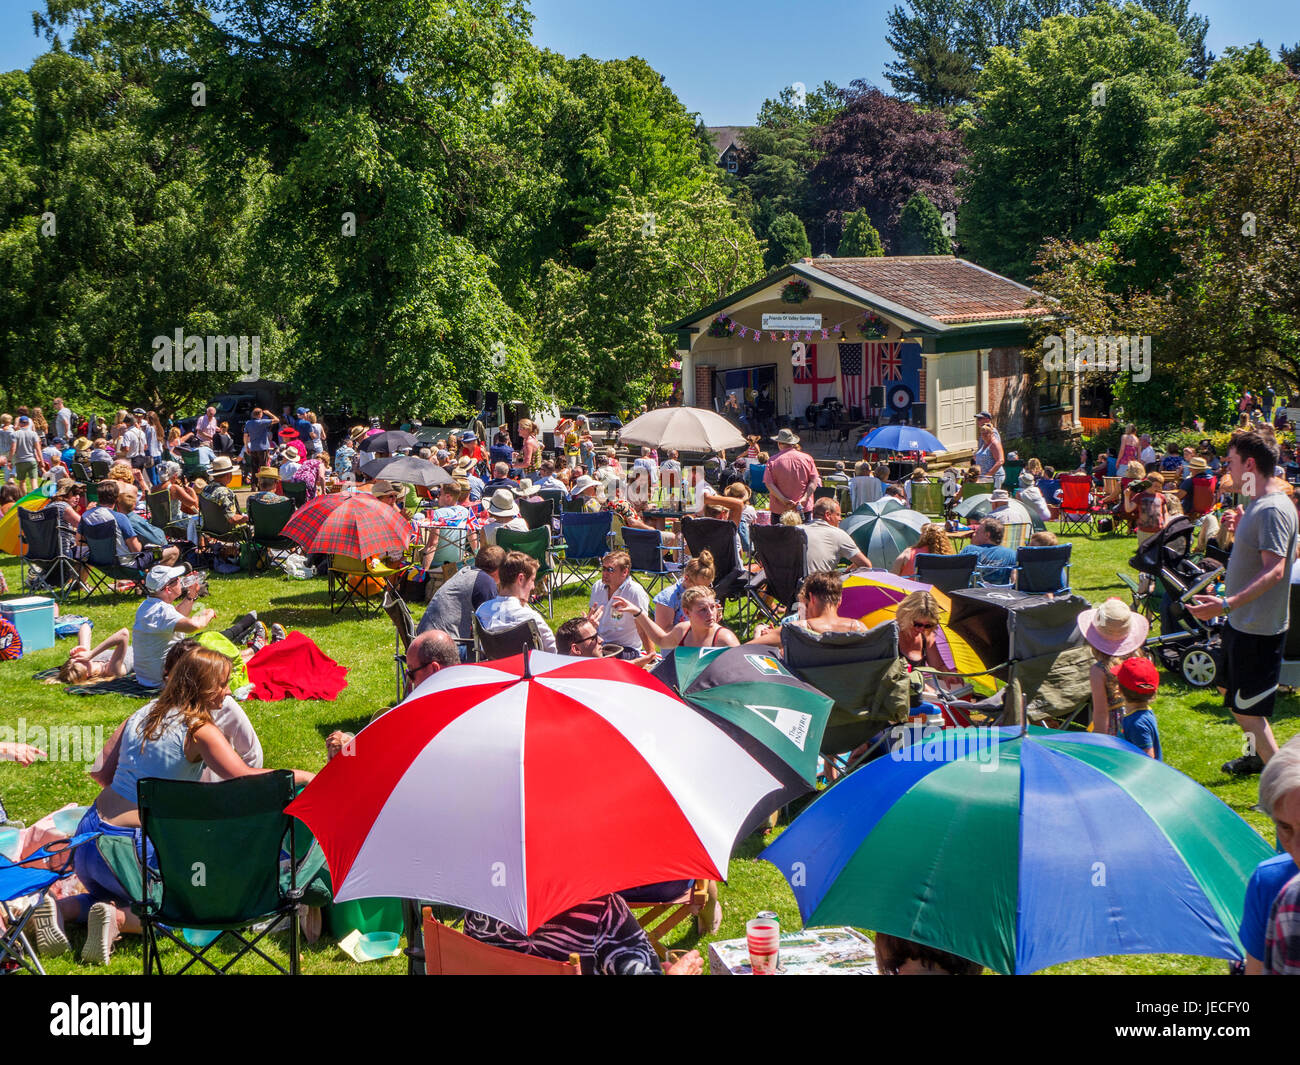 Crowd at the Bandstand during the Annual 1940s Open Day in Valley Gardens Harrogate North Yorkshire England - Stock Image